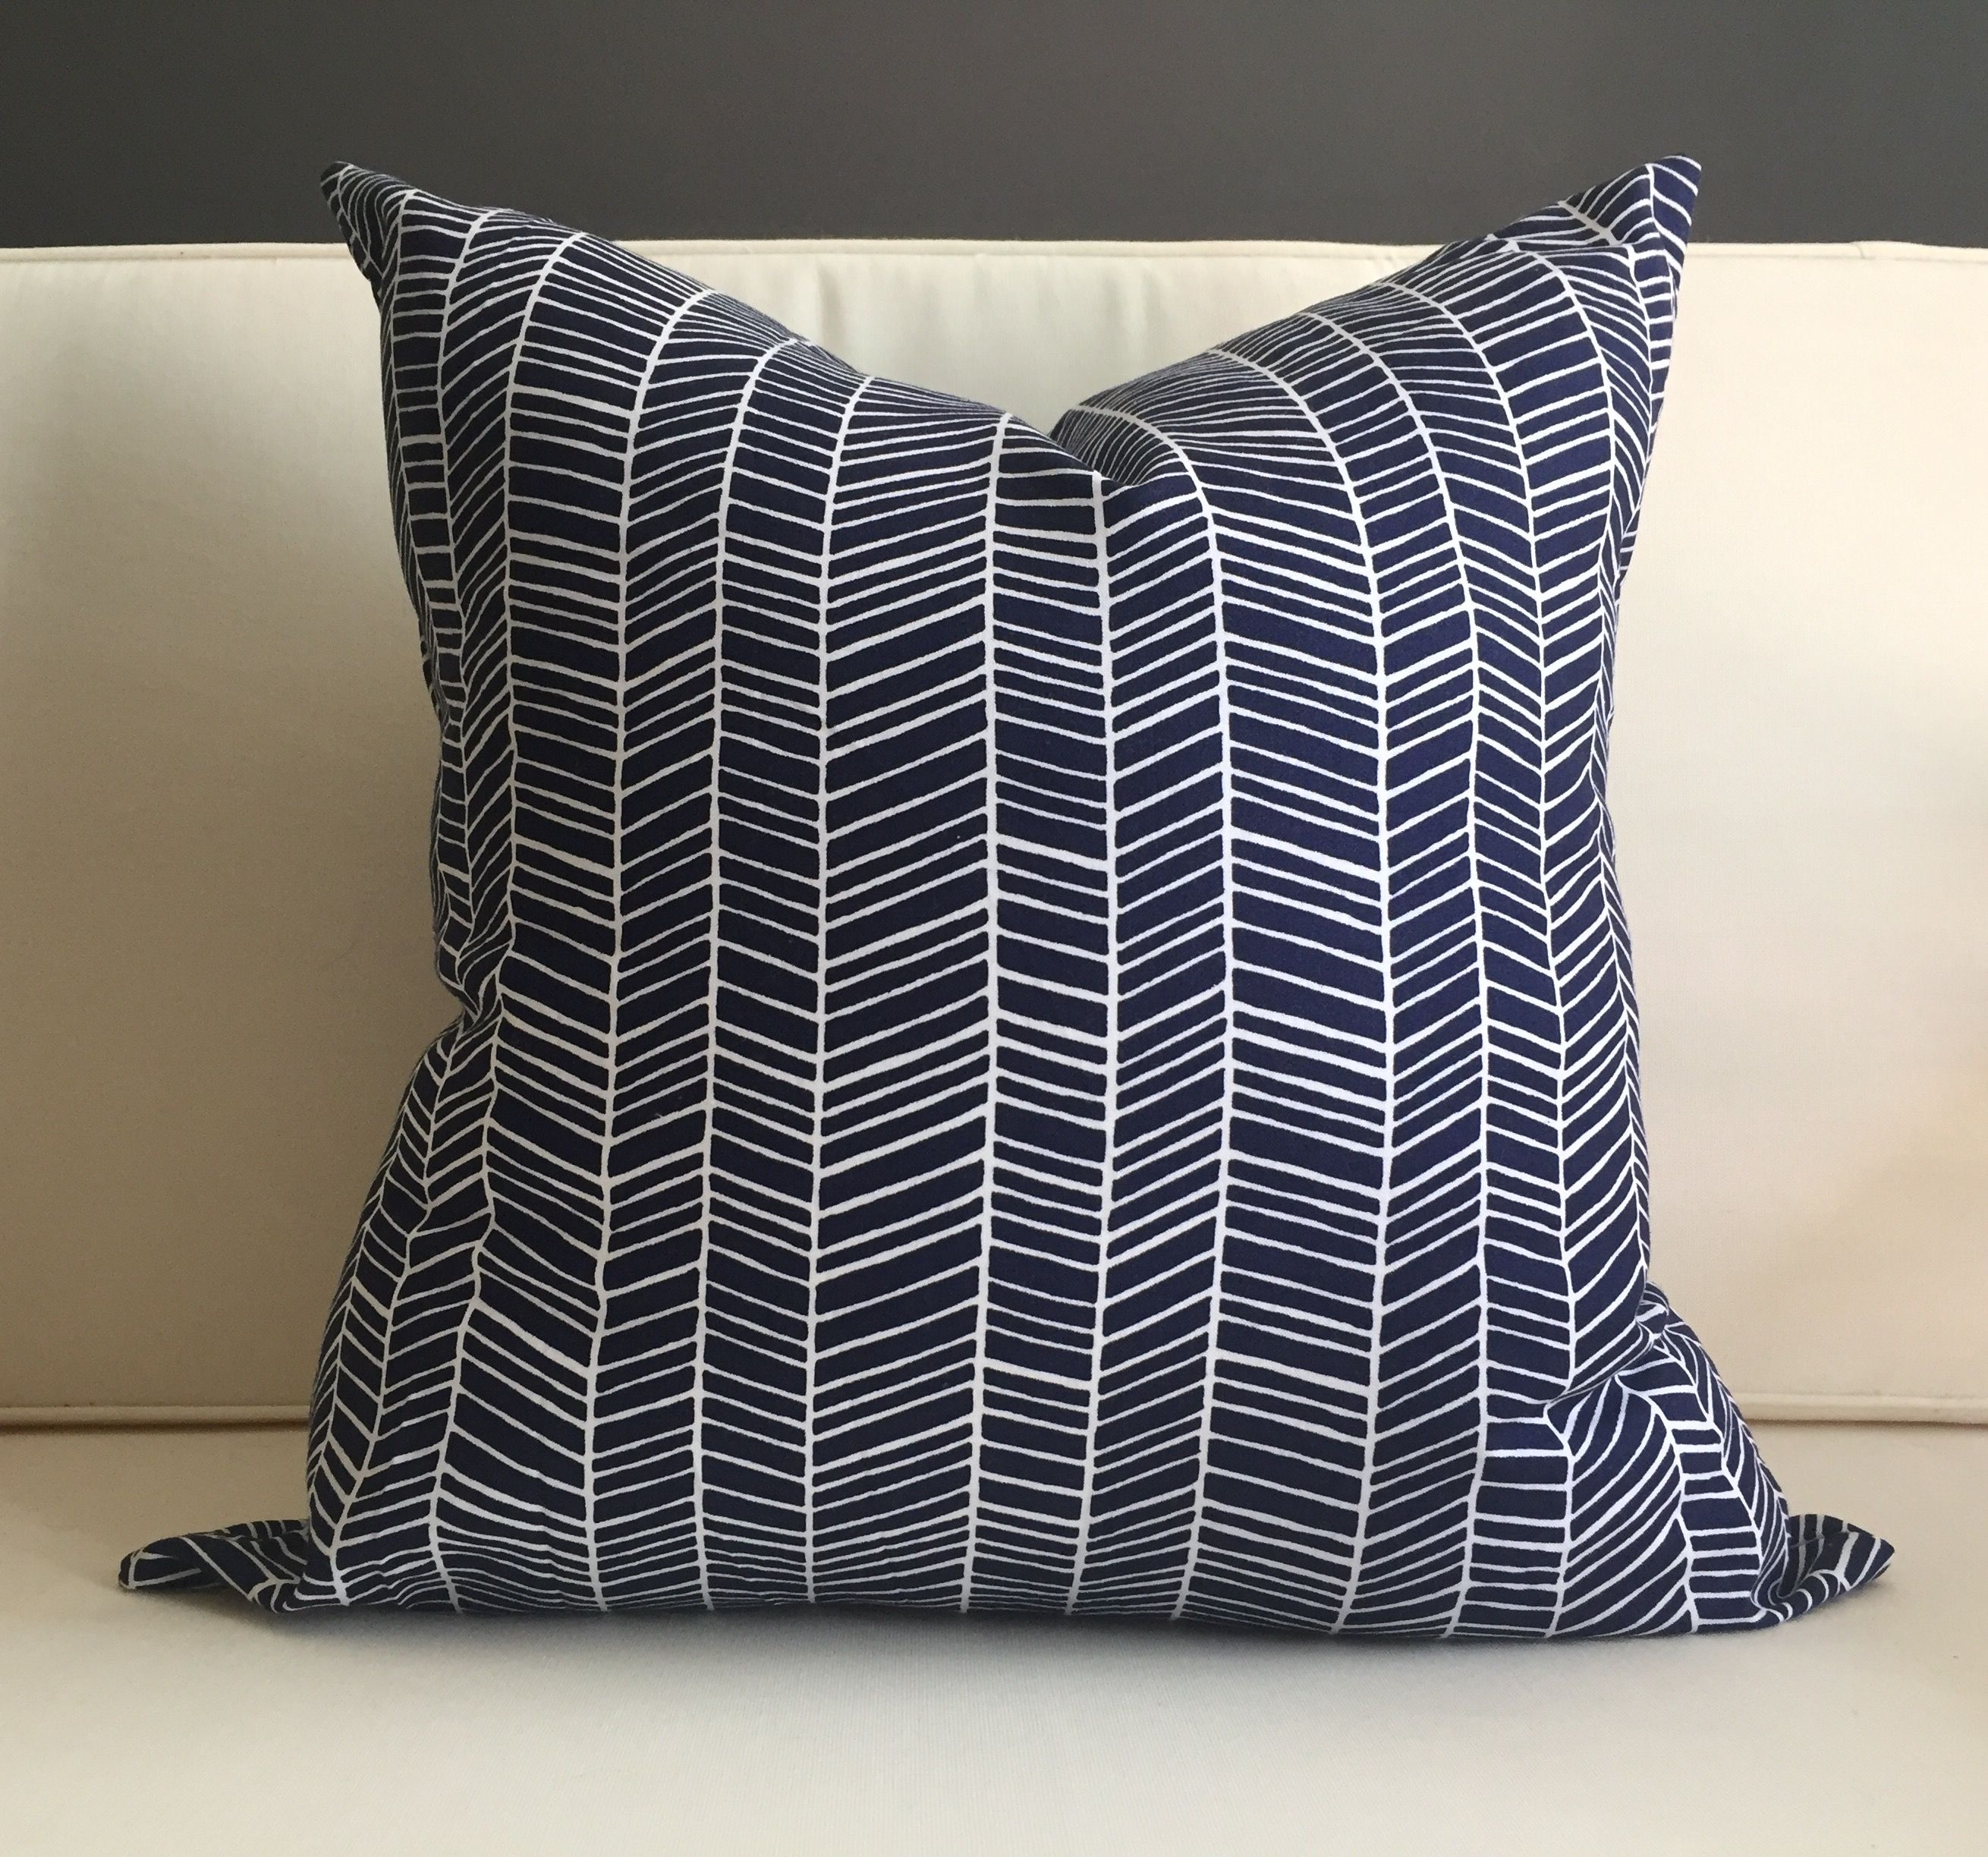 Pillow Cover Navy Blue And White Herringbone Pillow Cover Herringbone Pillow Navy Couch Pillows Navy Pillow Cover